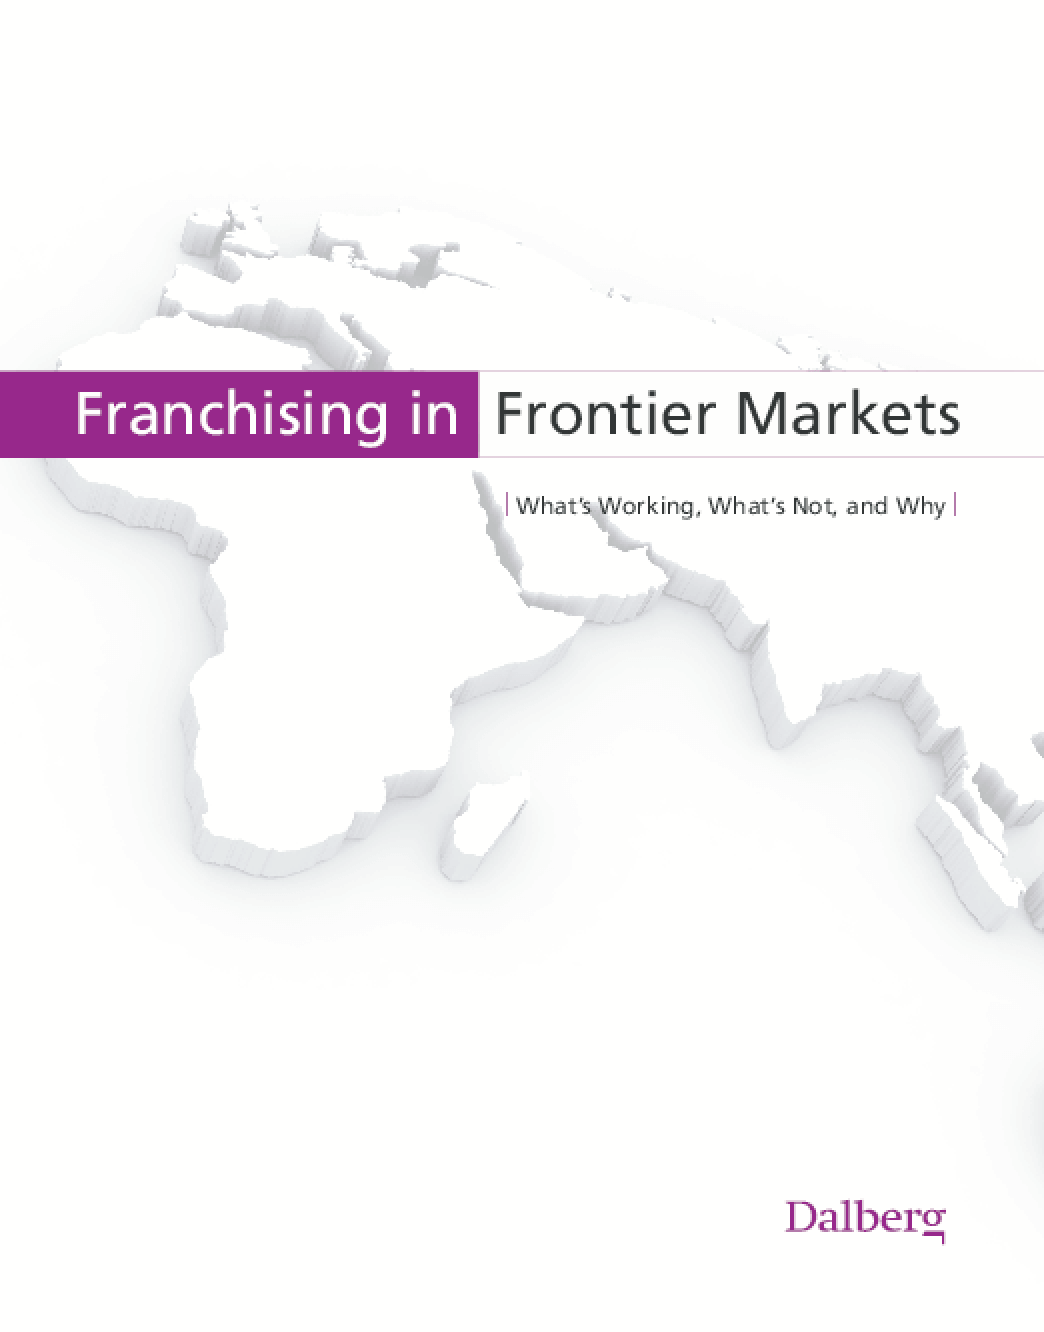 Franchising in Frontier Markets: What's Working, What's Not, and Why